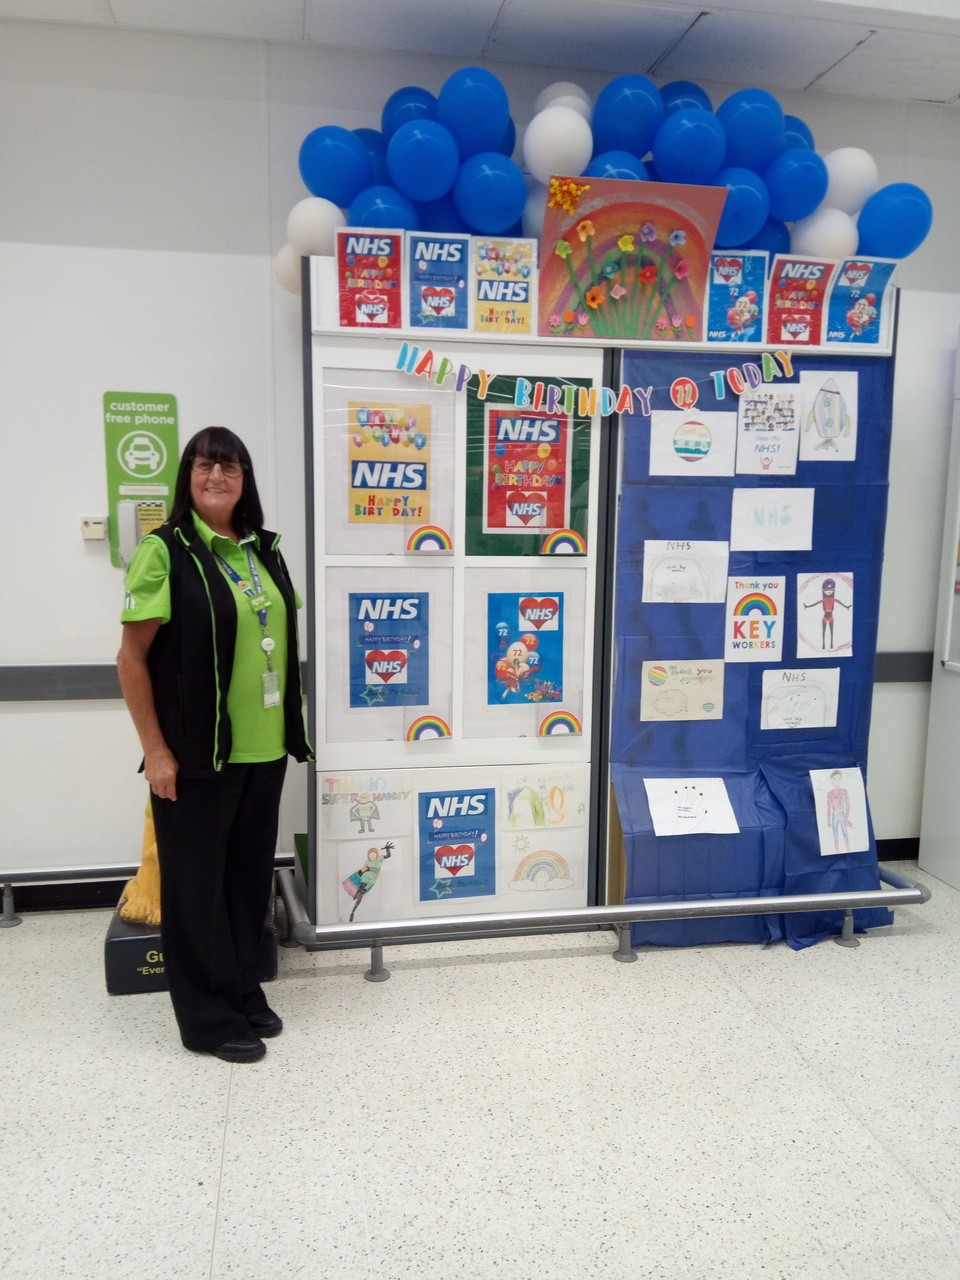 Happy 72nd birthday to the NHS! From Asda Broadstairs. | Asda Broadstairs